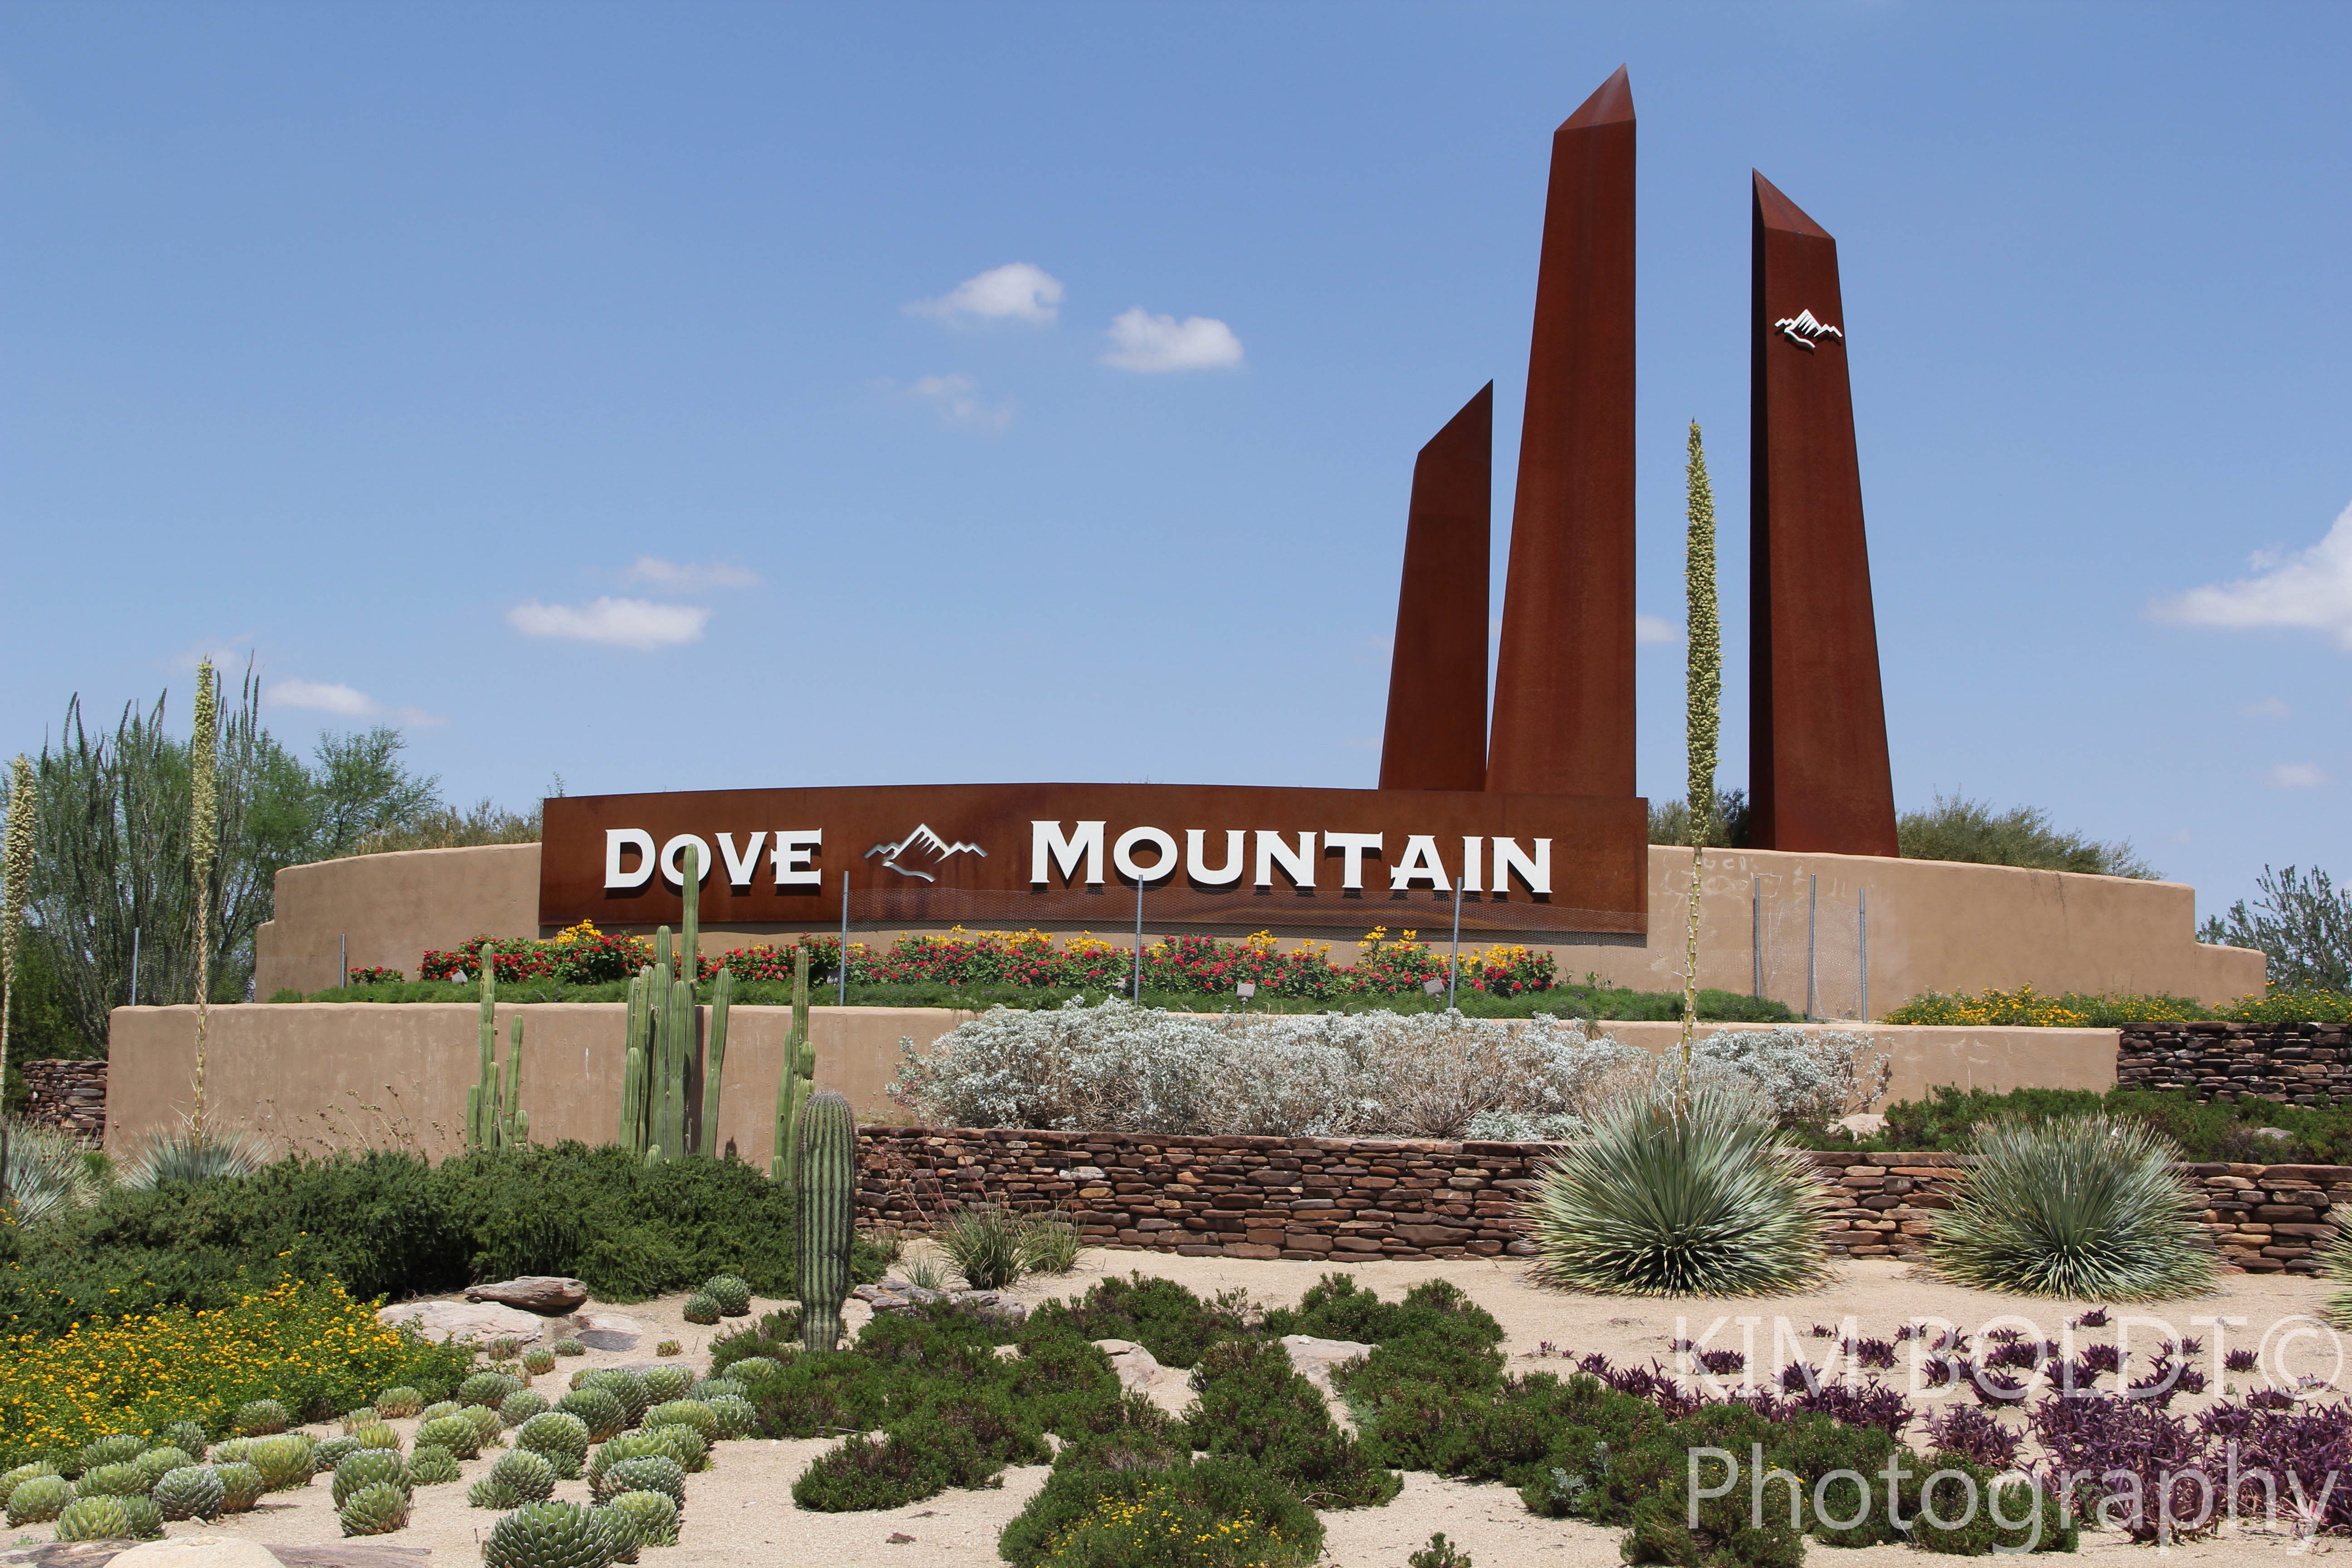 Pleasing Dove Mountain Golf Includes The Highlands Golf Course Download Free Architecture Designs Intelgarnamadebymaigaardcom